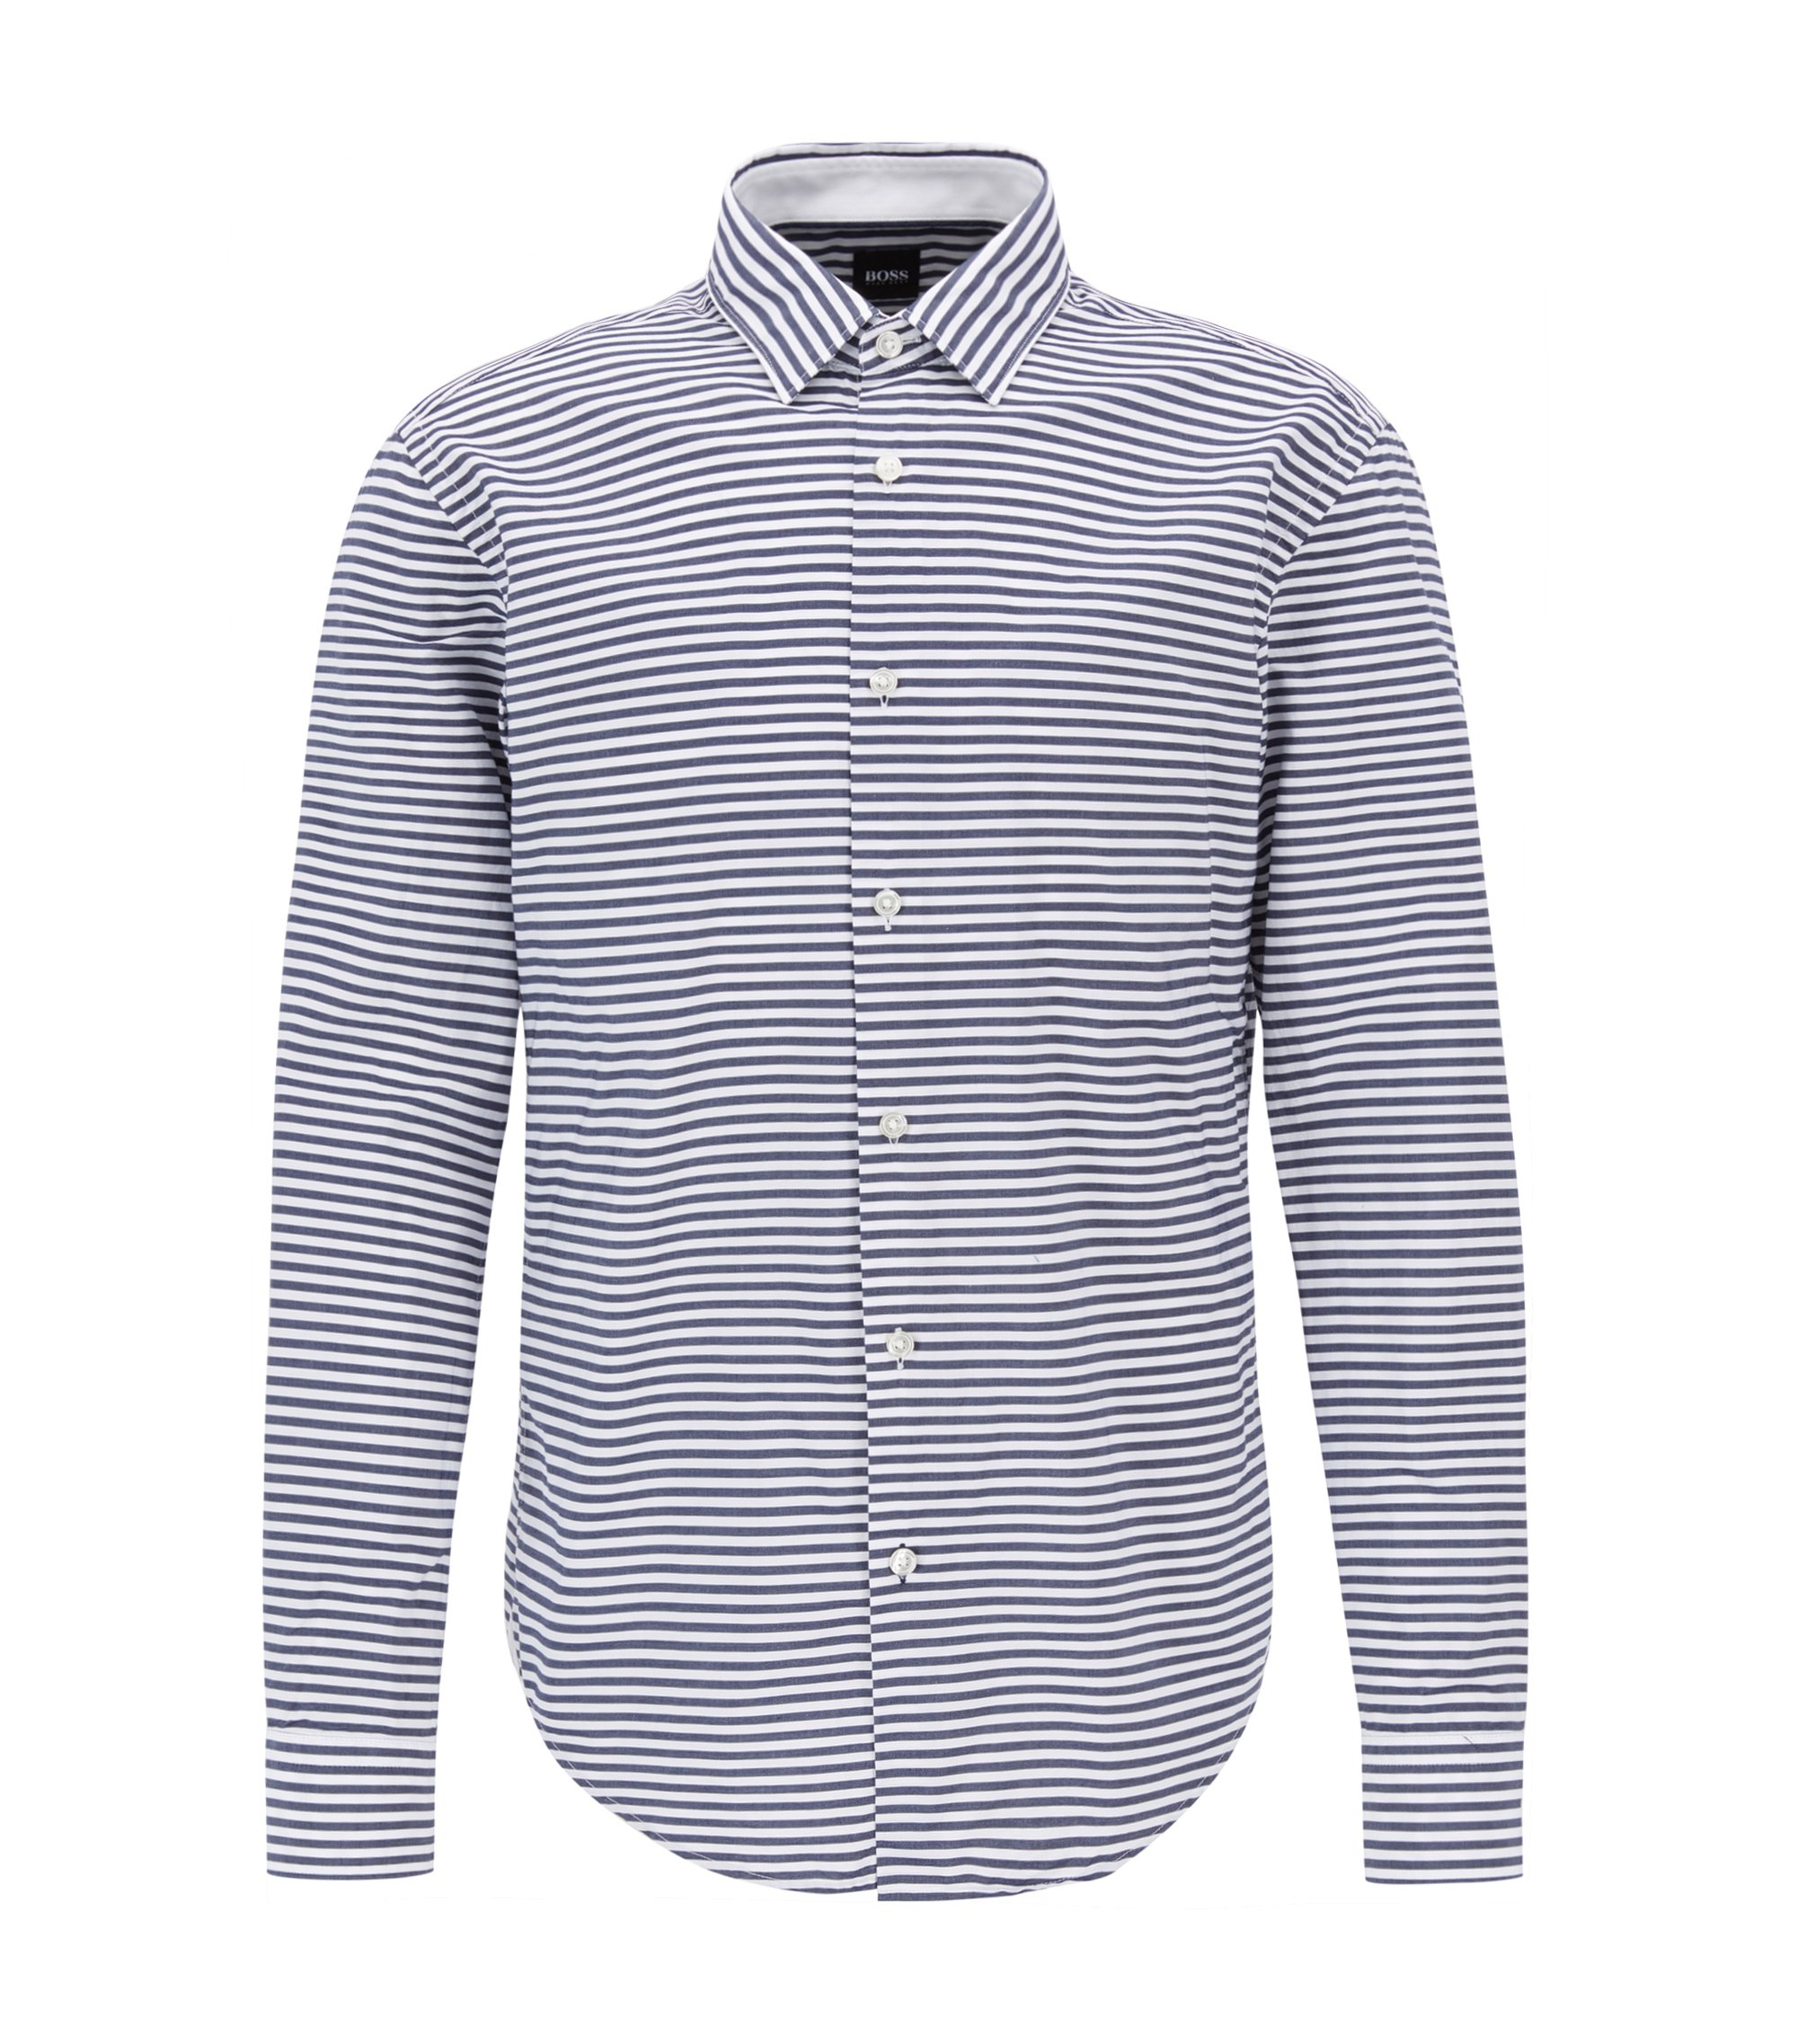 Striped Cotton Sport Shirt, Slim Fit | Ronnie F, Dark Blue